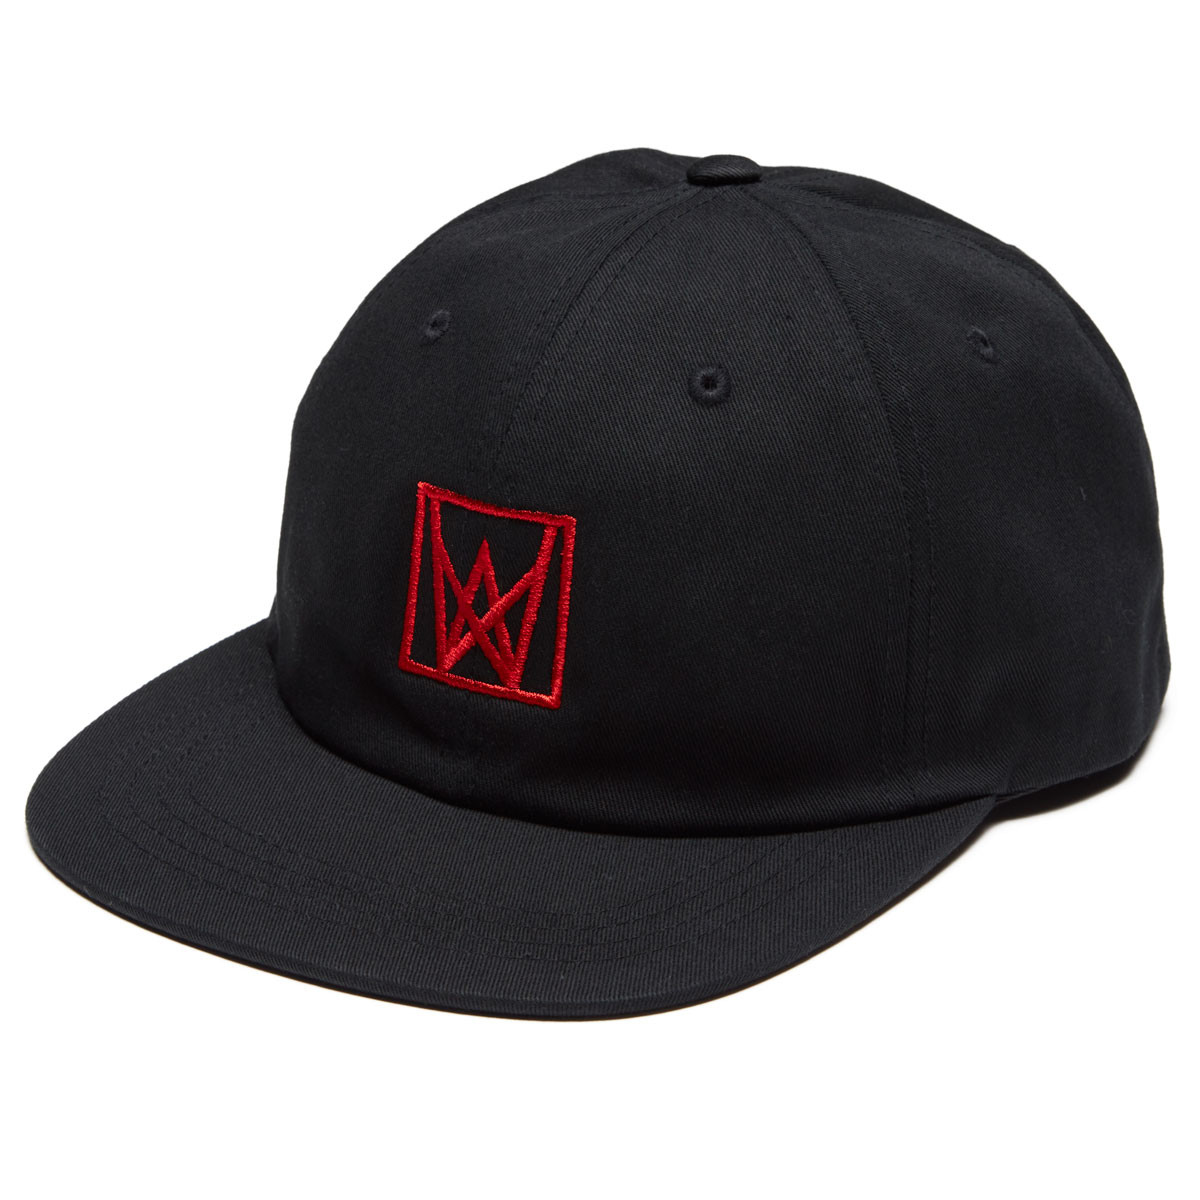 Welcome Icon Unstructured Snapback Hat - Black Red 2b37d1b6dfb